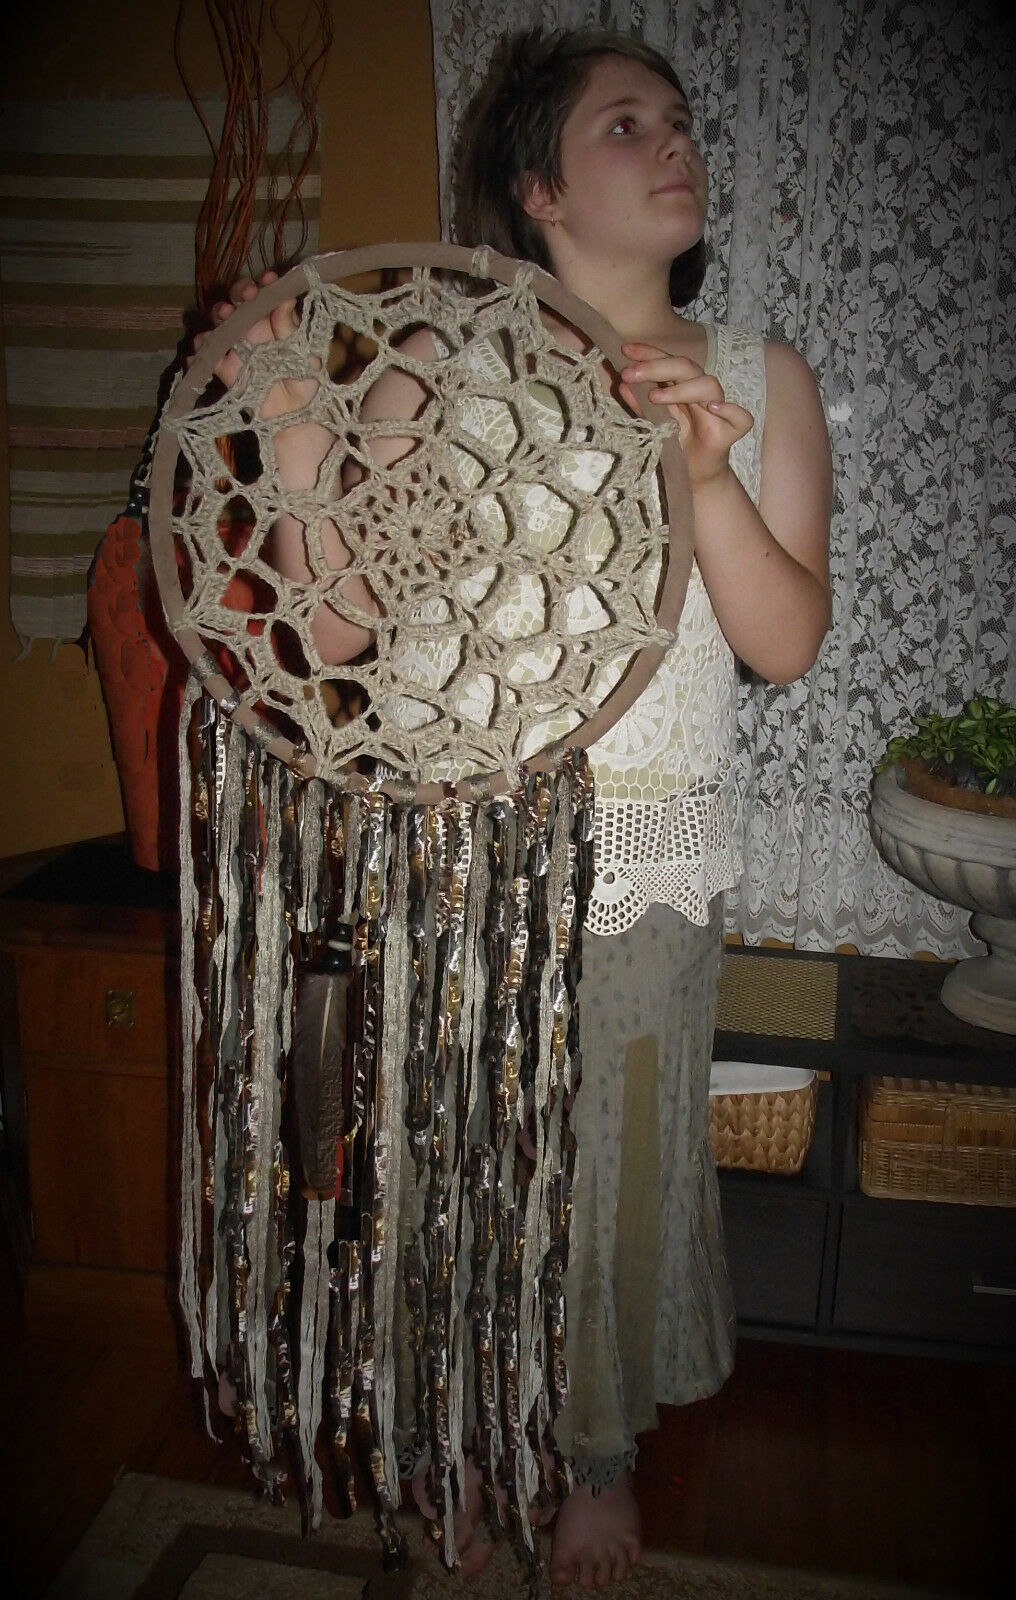 Extra large dreamcatcher wall hanging ombre neutral tones boho wedding decor art